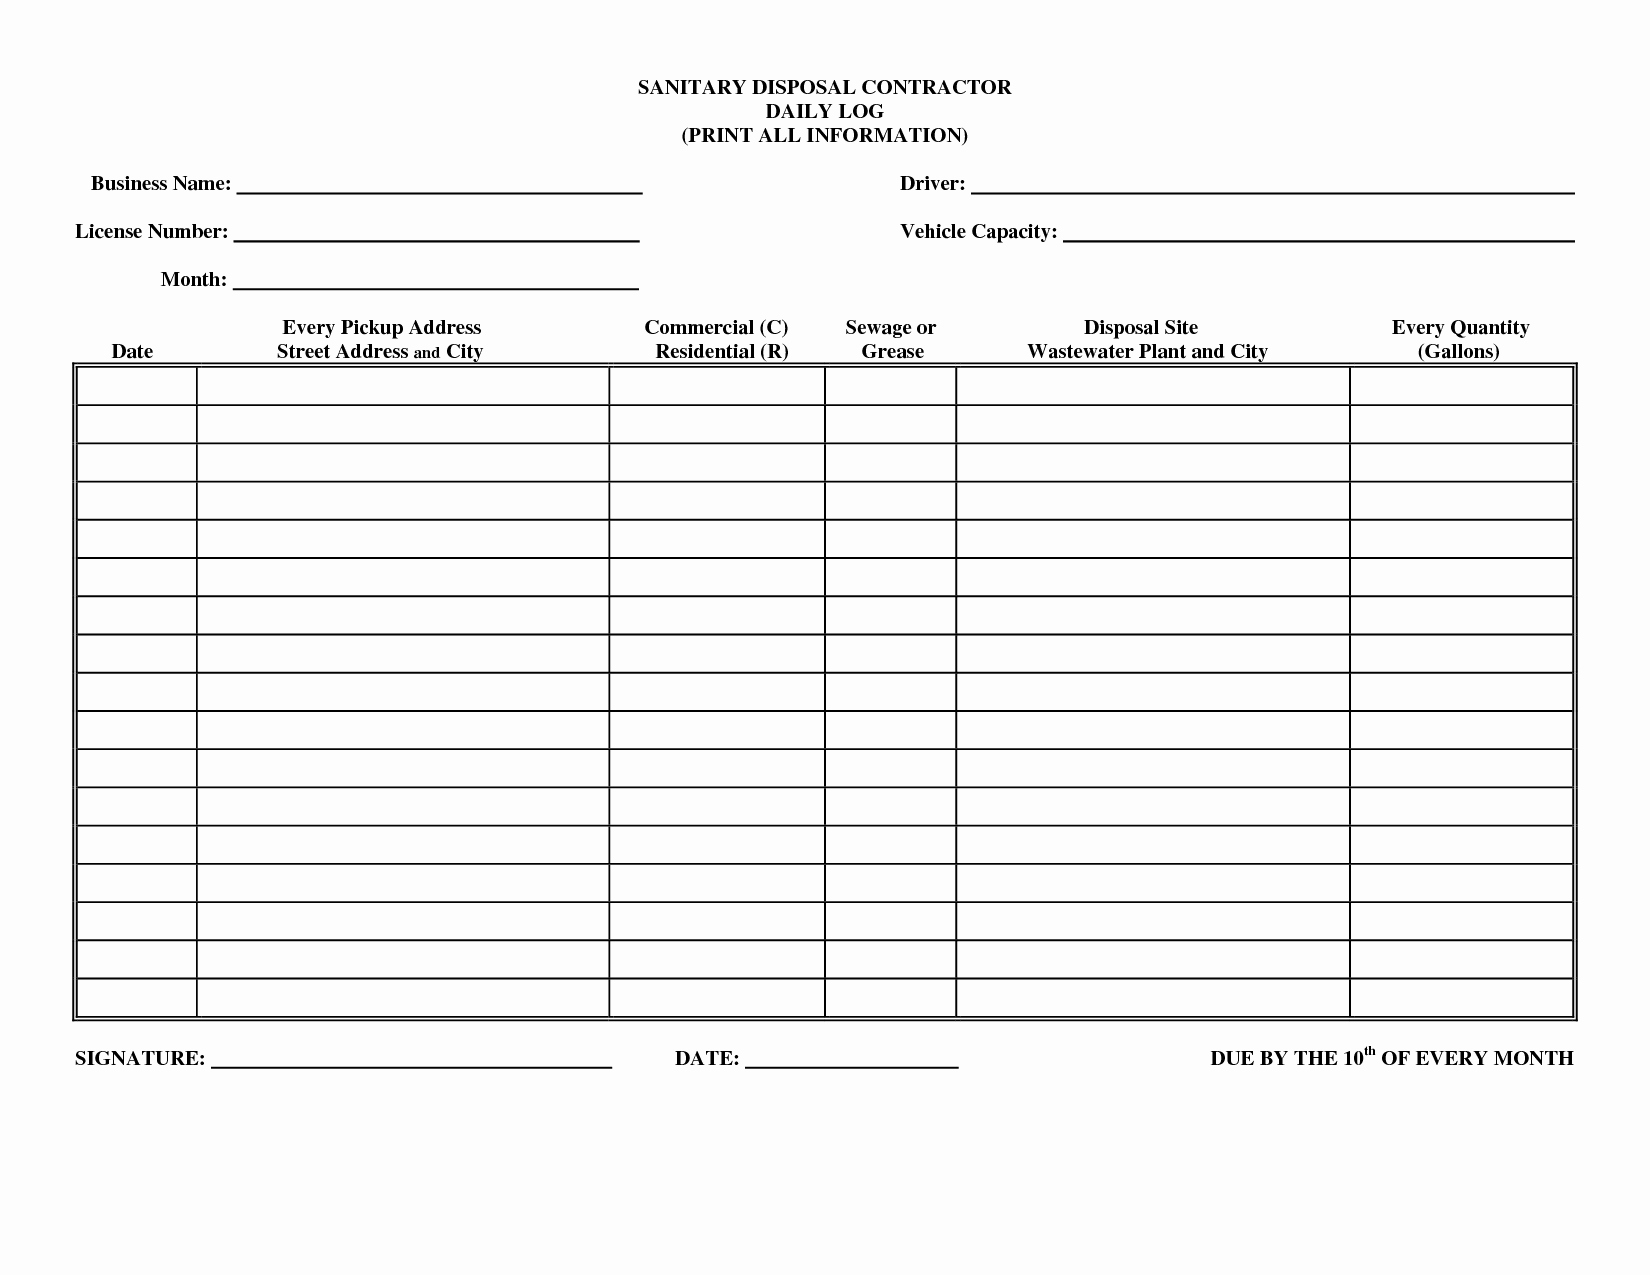 Daily Log Template Excel Lovely Best S Of Daily Log Examples Daily Log Book